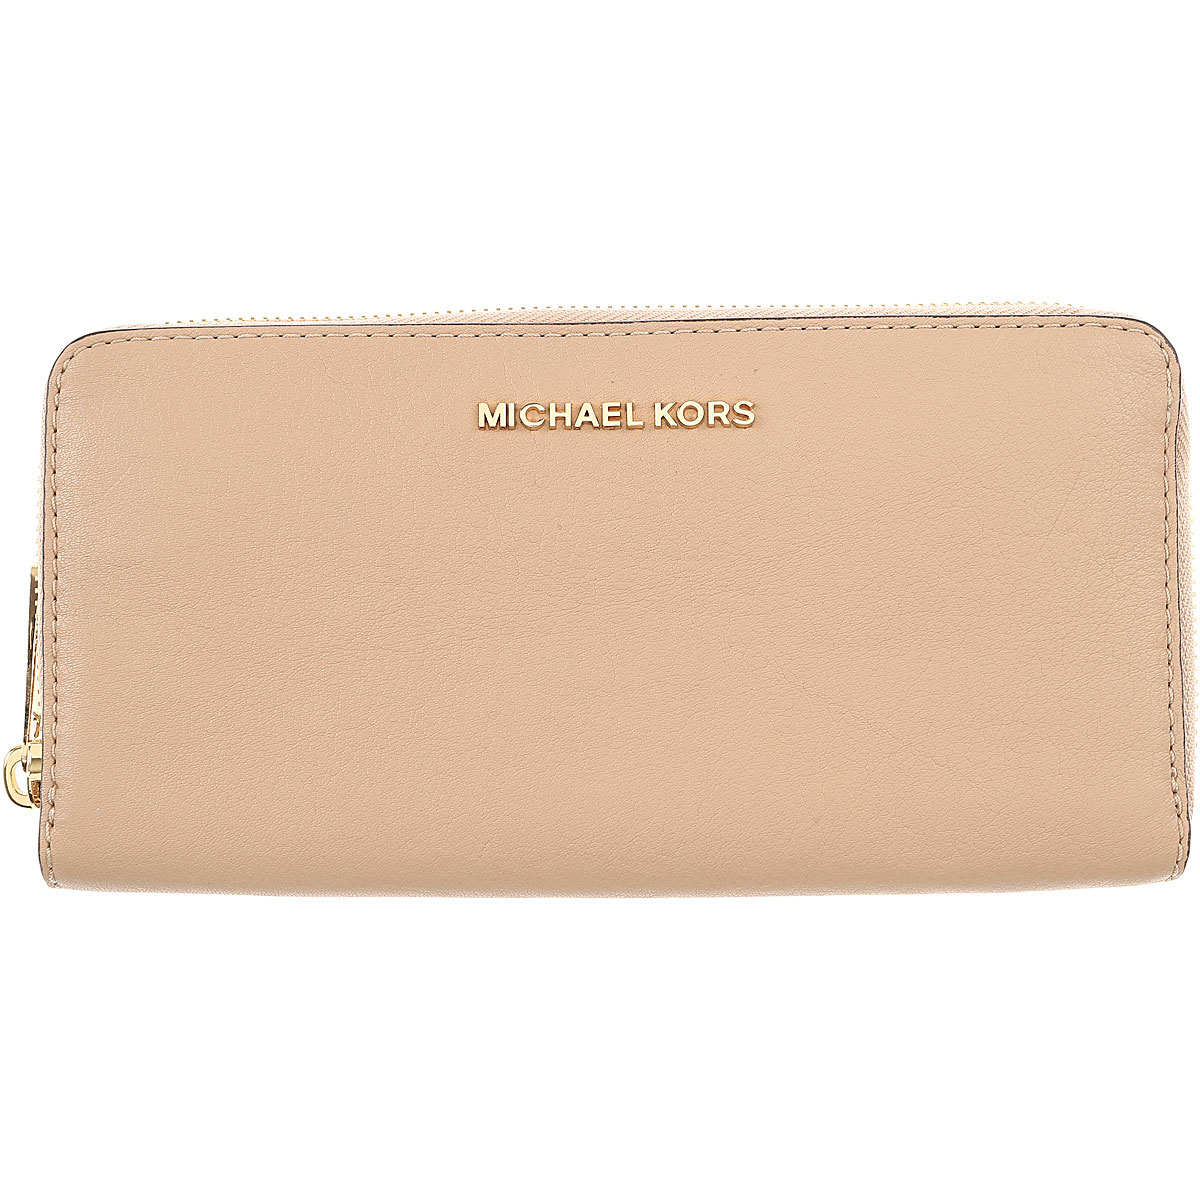 Michael Kors Womens Wallets On Sale, Oyster, Leather, 2019